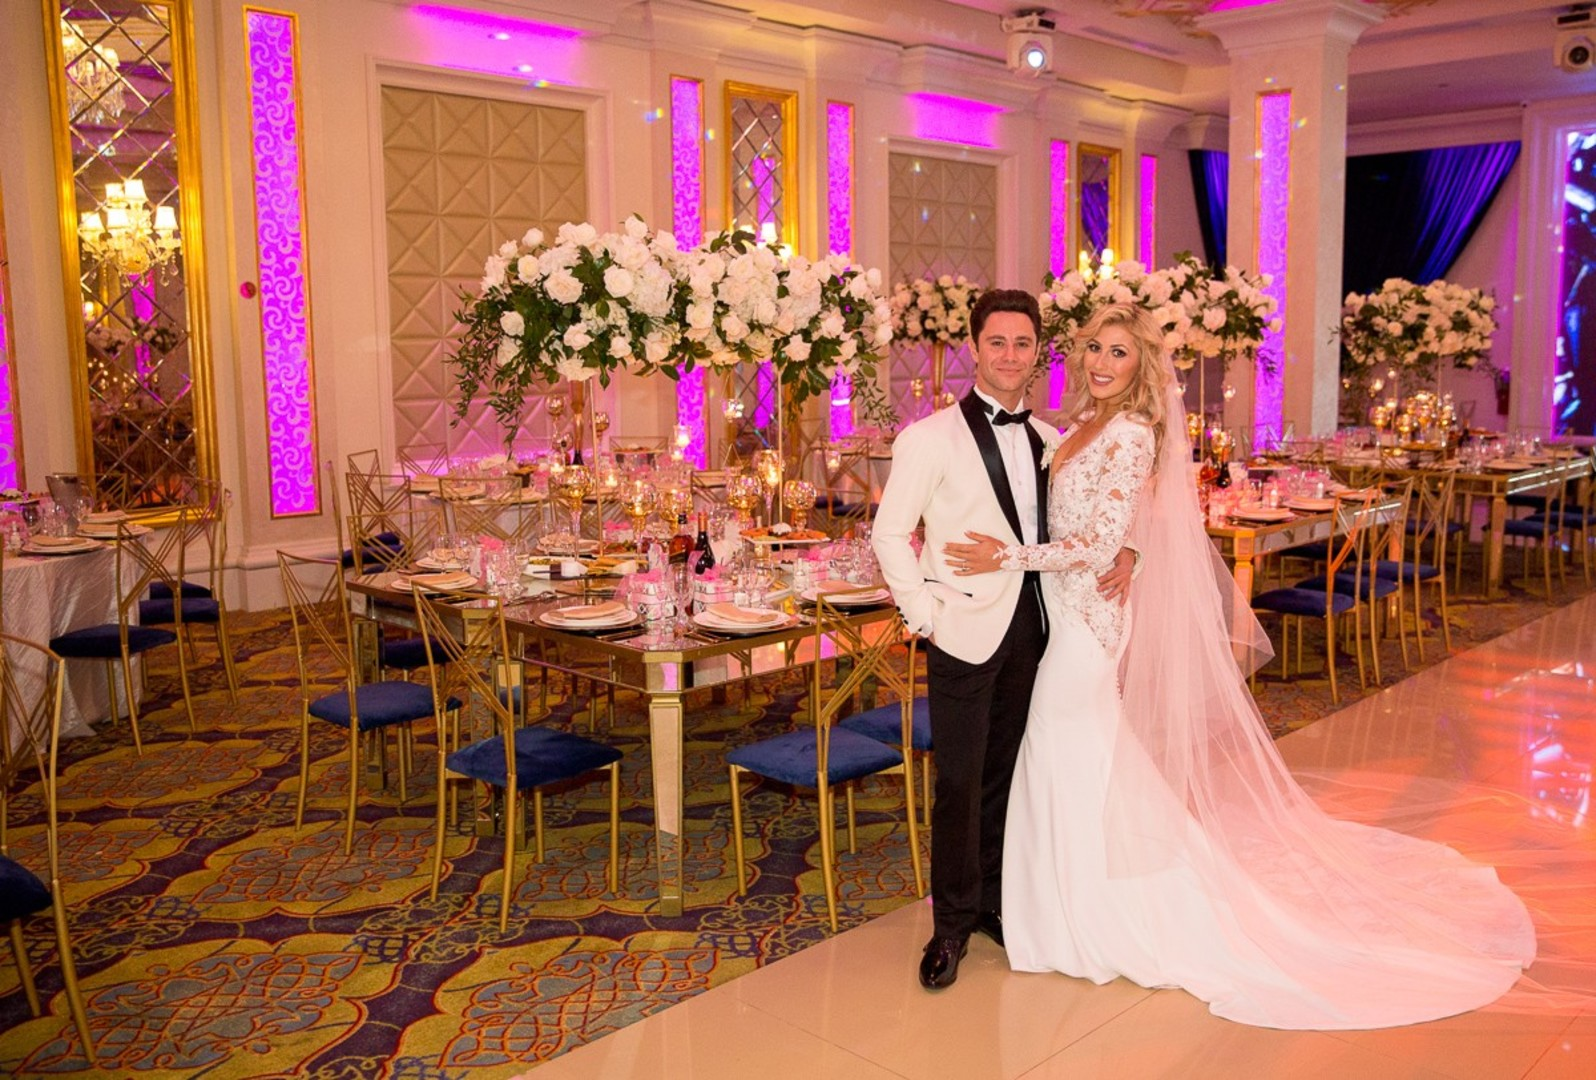 DWTS' Emma Slater and Sasha Farber's Wedding, Bella Blanca Event Center, Emma and Sasha's wedding reception reveal